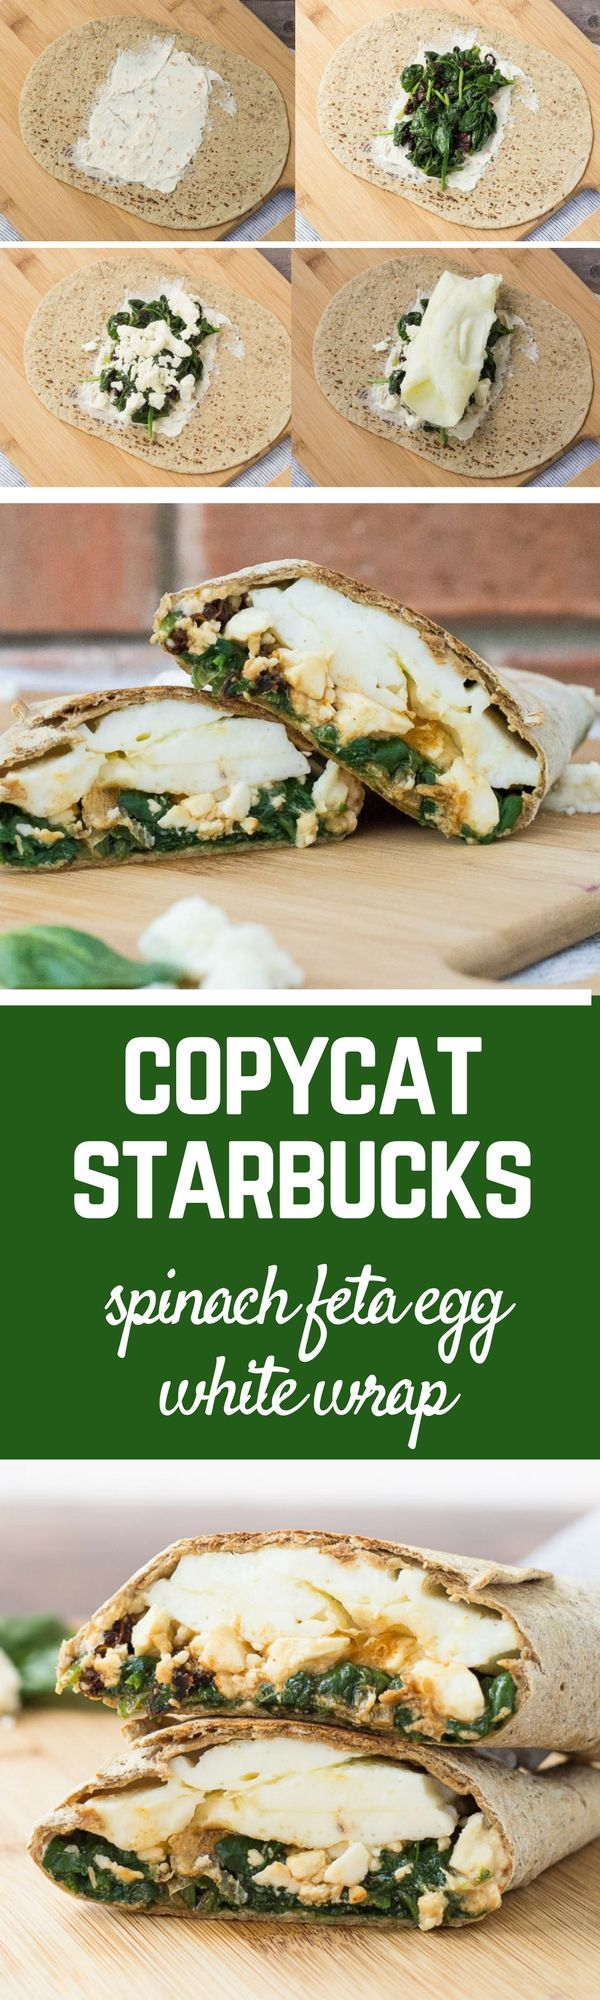 Make a copycat Starbucks Egg White Wrap with Spinach and Feta. So easy and you can't beat the flavor! Filling and satisfying, it is the perfect breakfast. Get the recipe on RachelCooks.com! #sponsored @flatoutbread